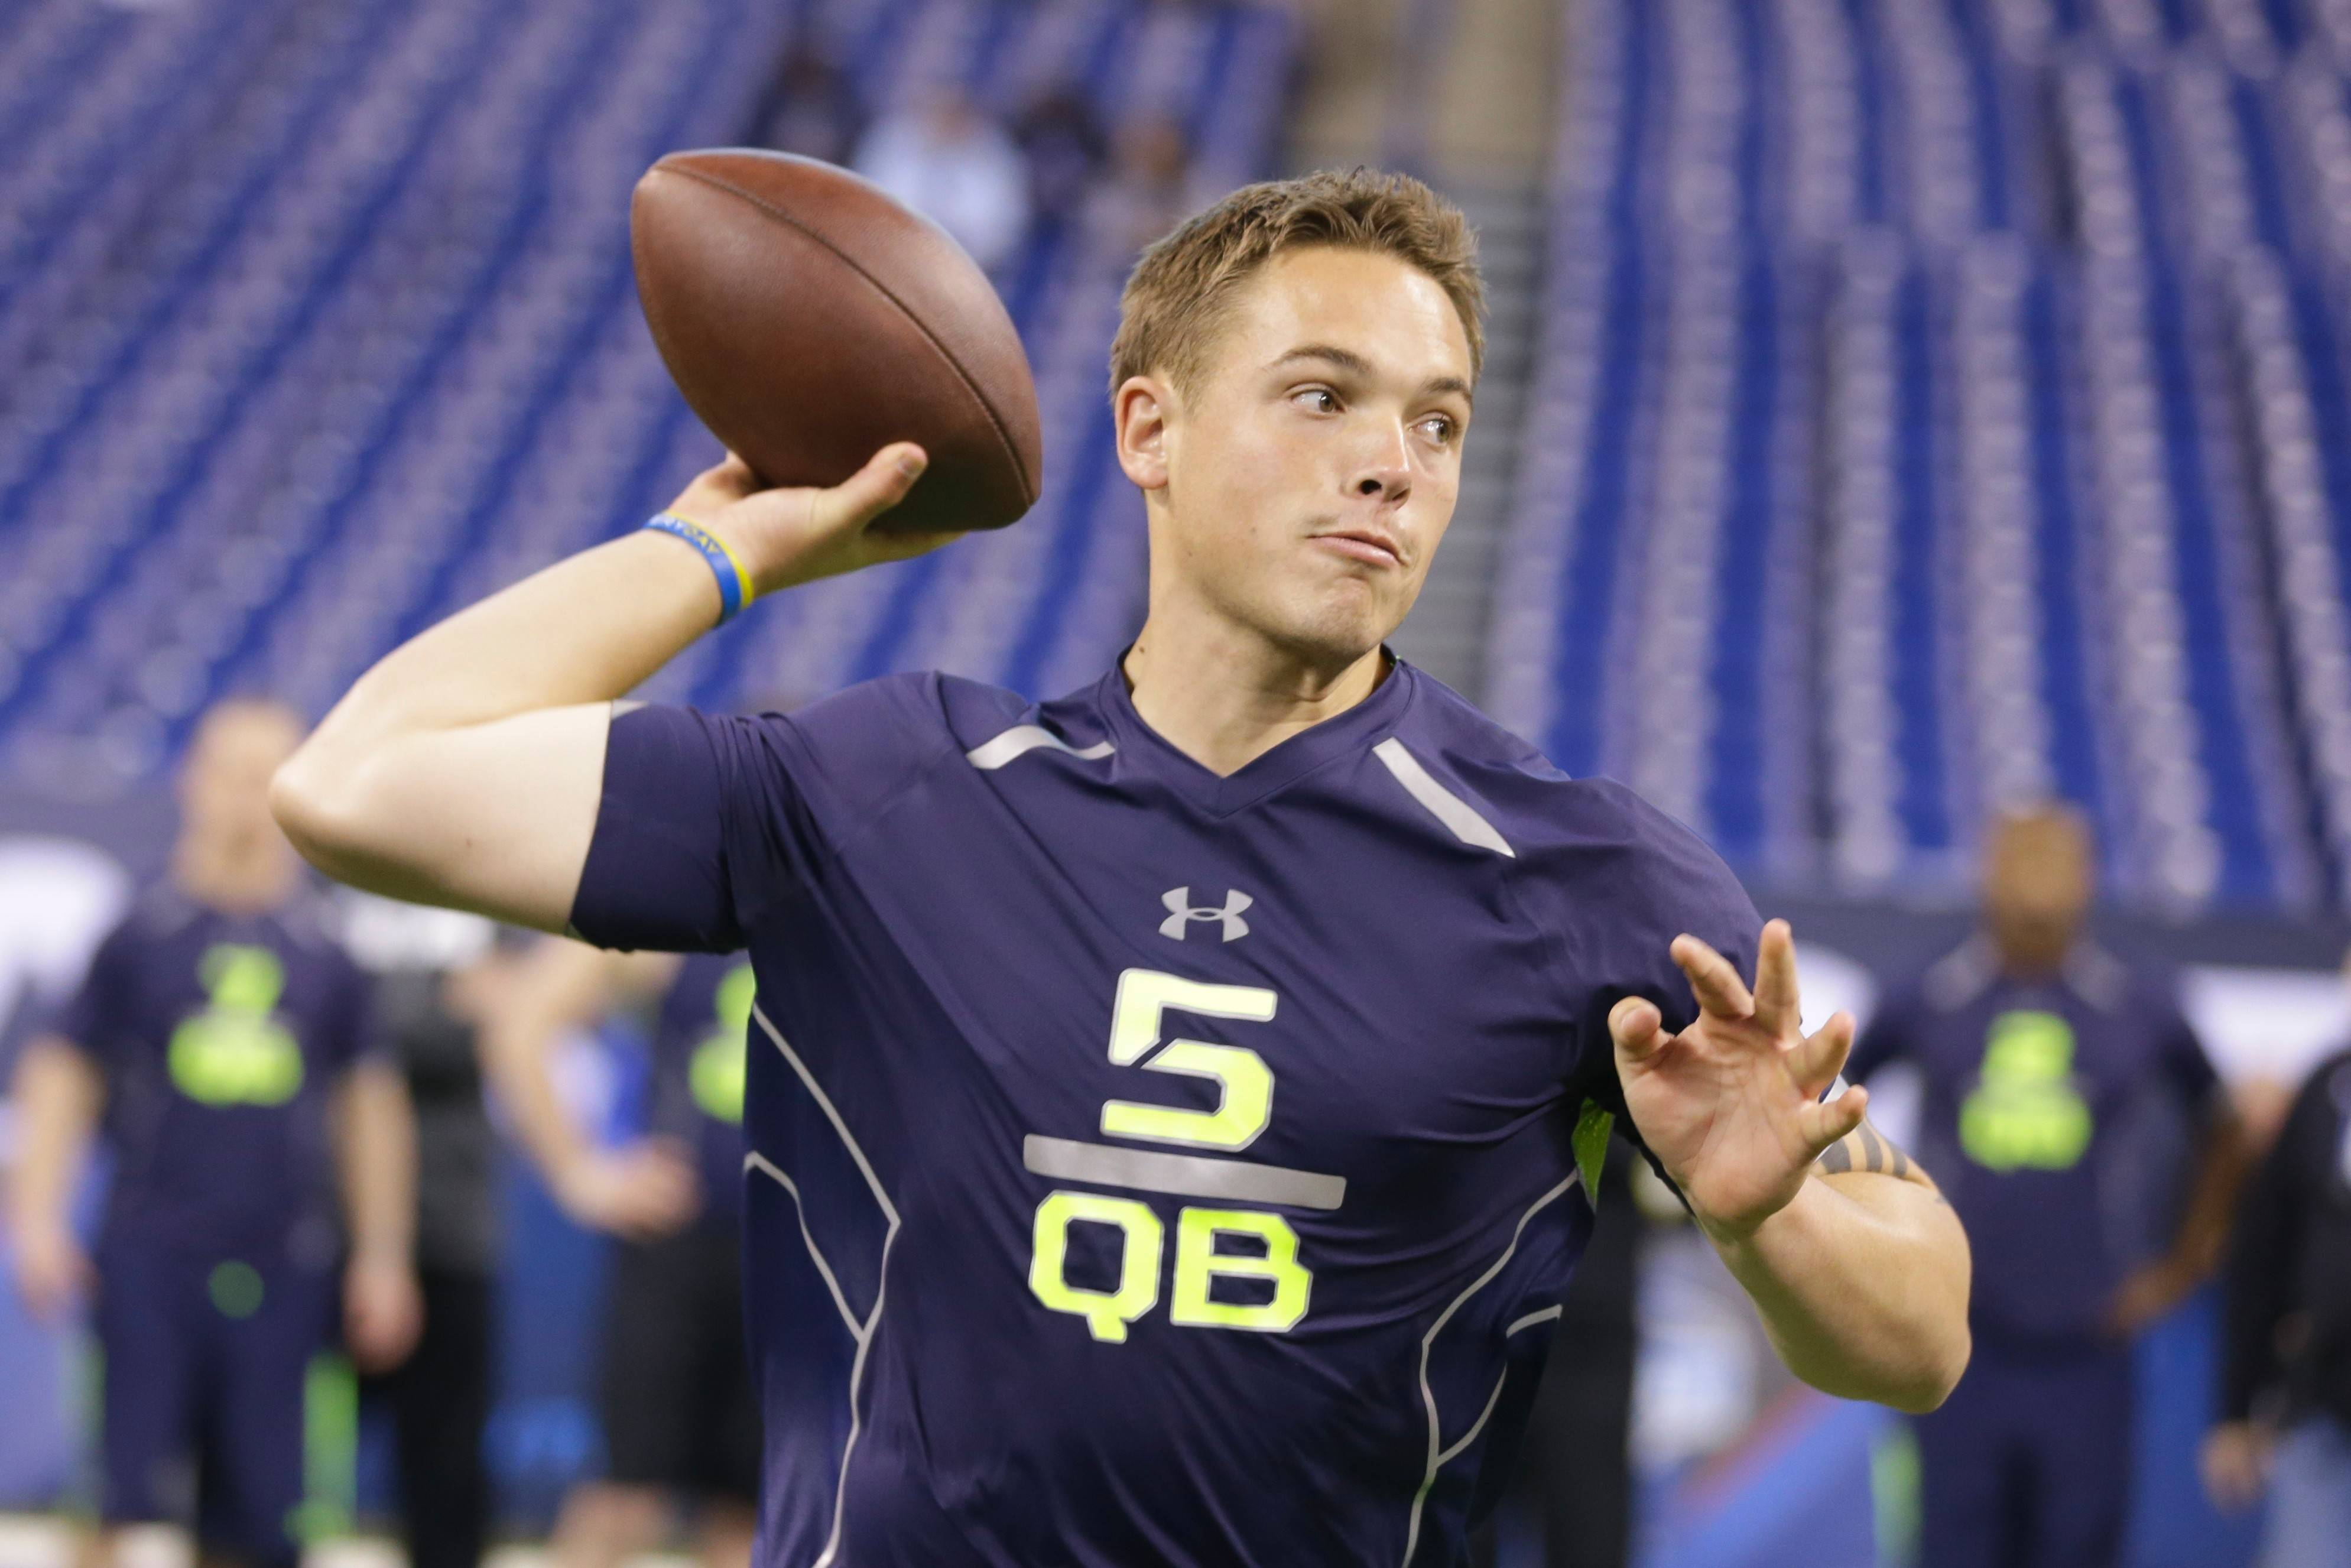 Sixth-round pick David Fales connected on 68 percent of his passes in two seasons at San Jose State.